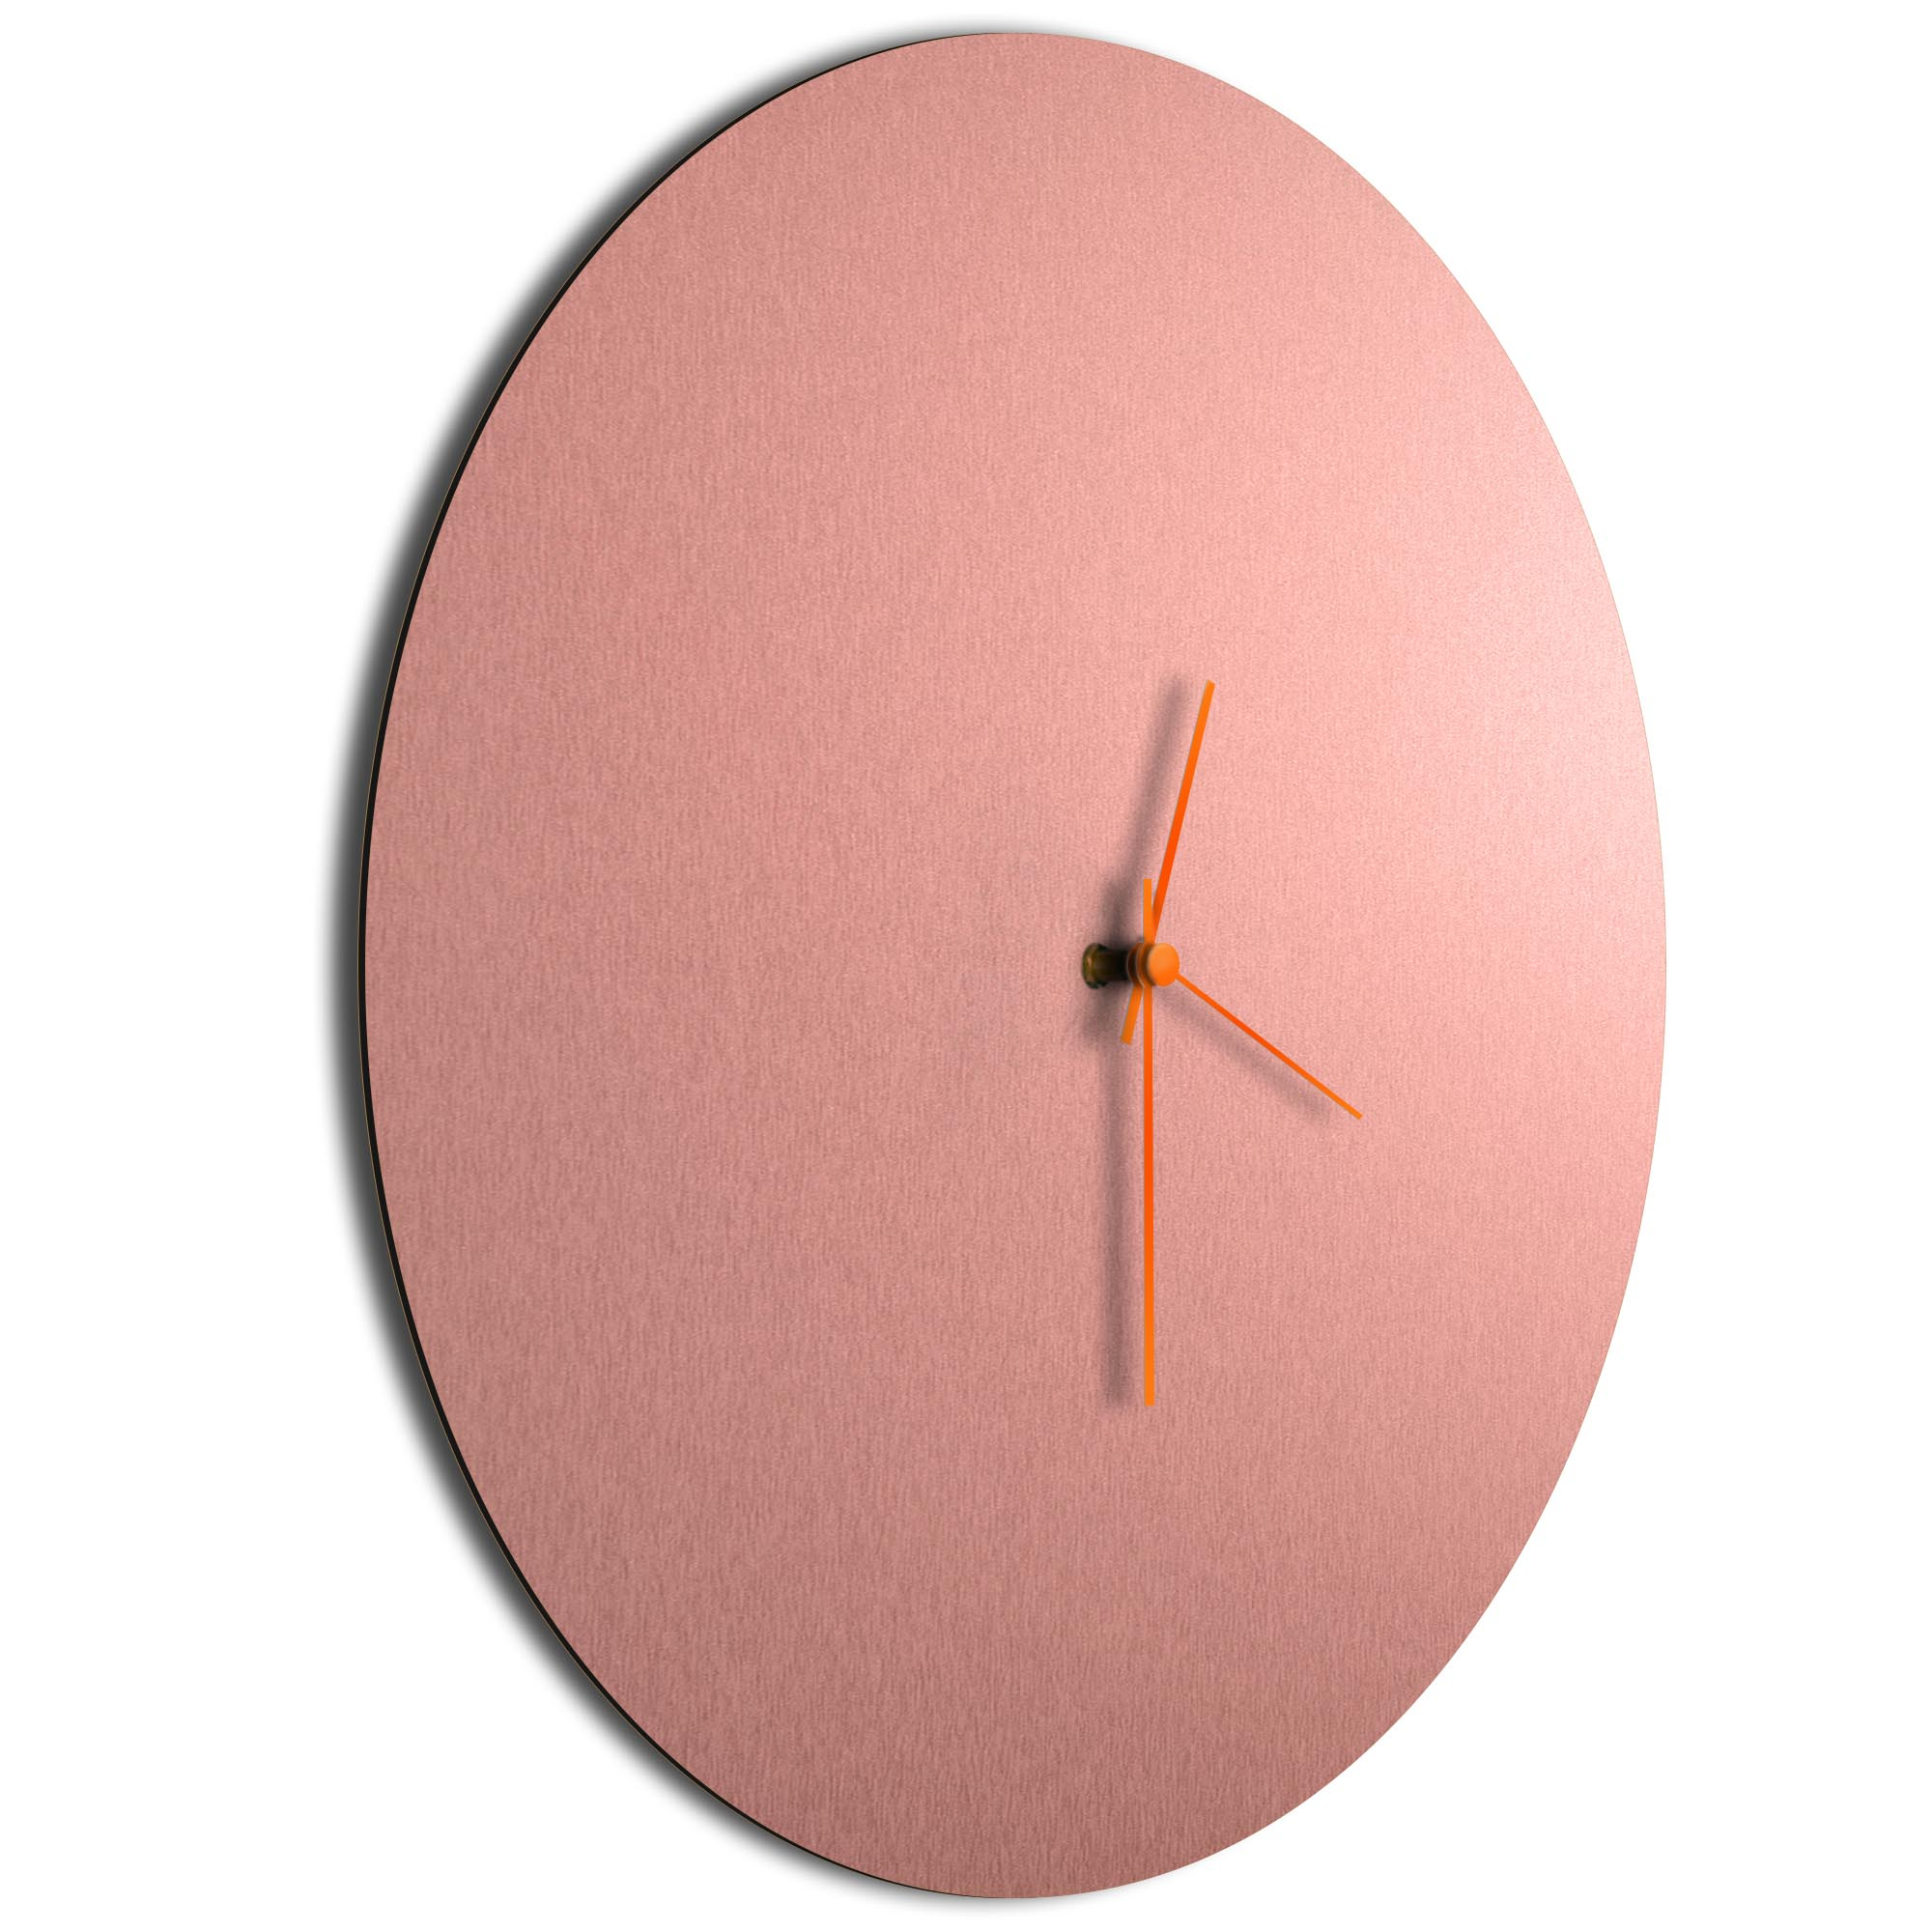 Coppersmith Circle Clock Large Orange - Image 2